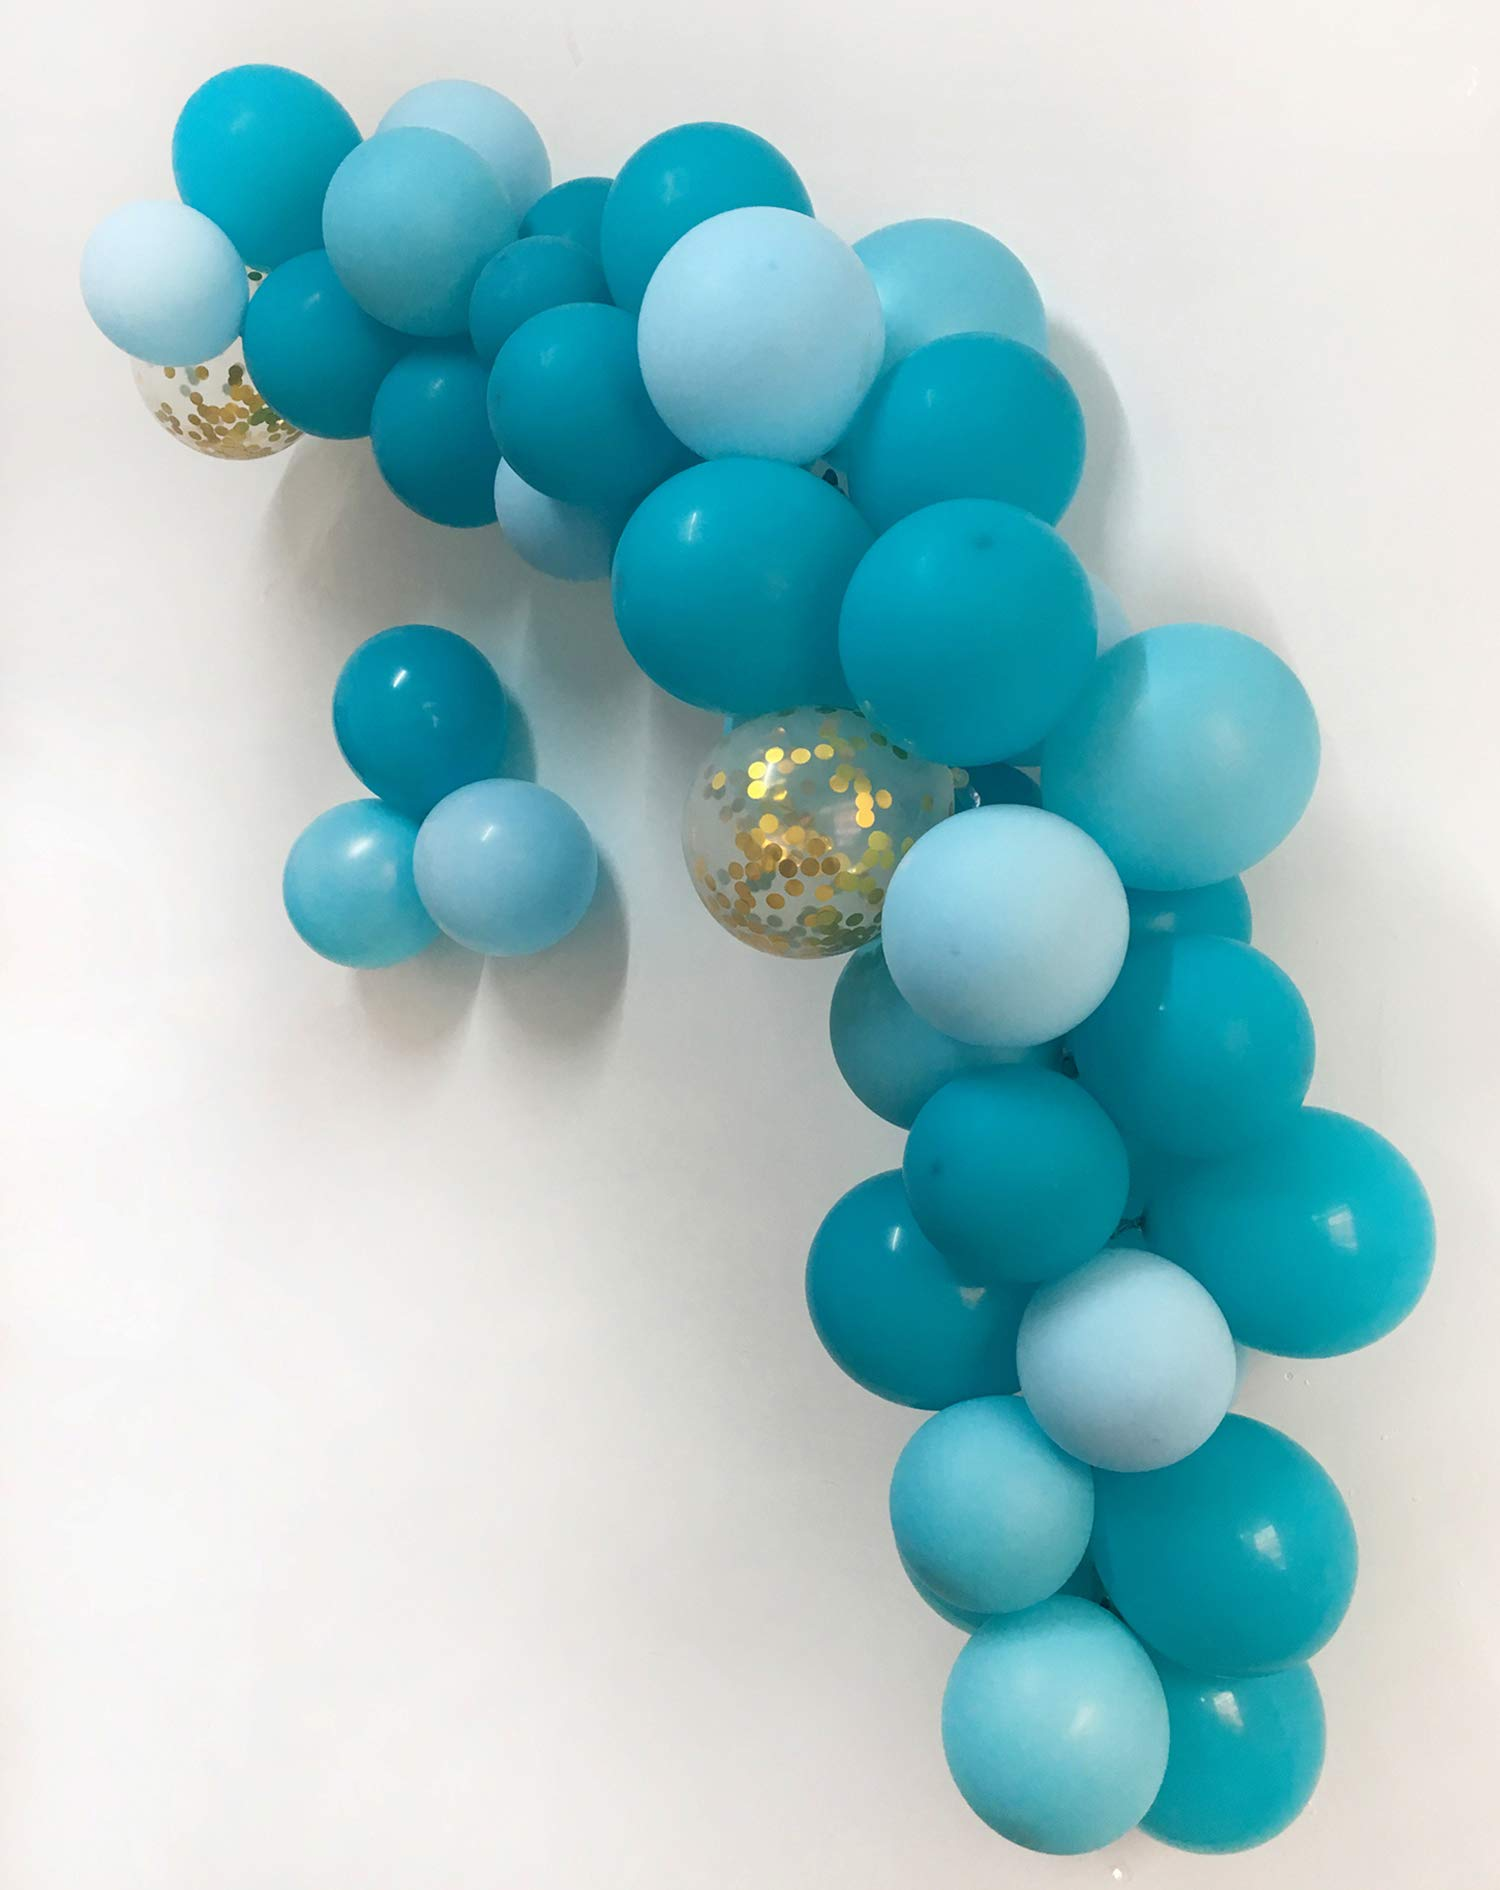 Balloon Arch Kit Balloon Garland Kit–Wedding Bachelorette Birthday Anniversary Party Decorations Backdrop Décor (Balloon Garland kit Turquoise Blue)